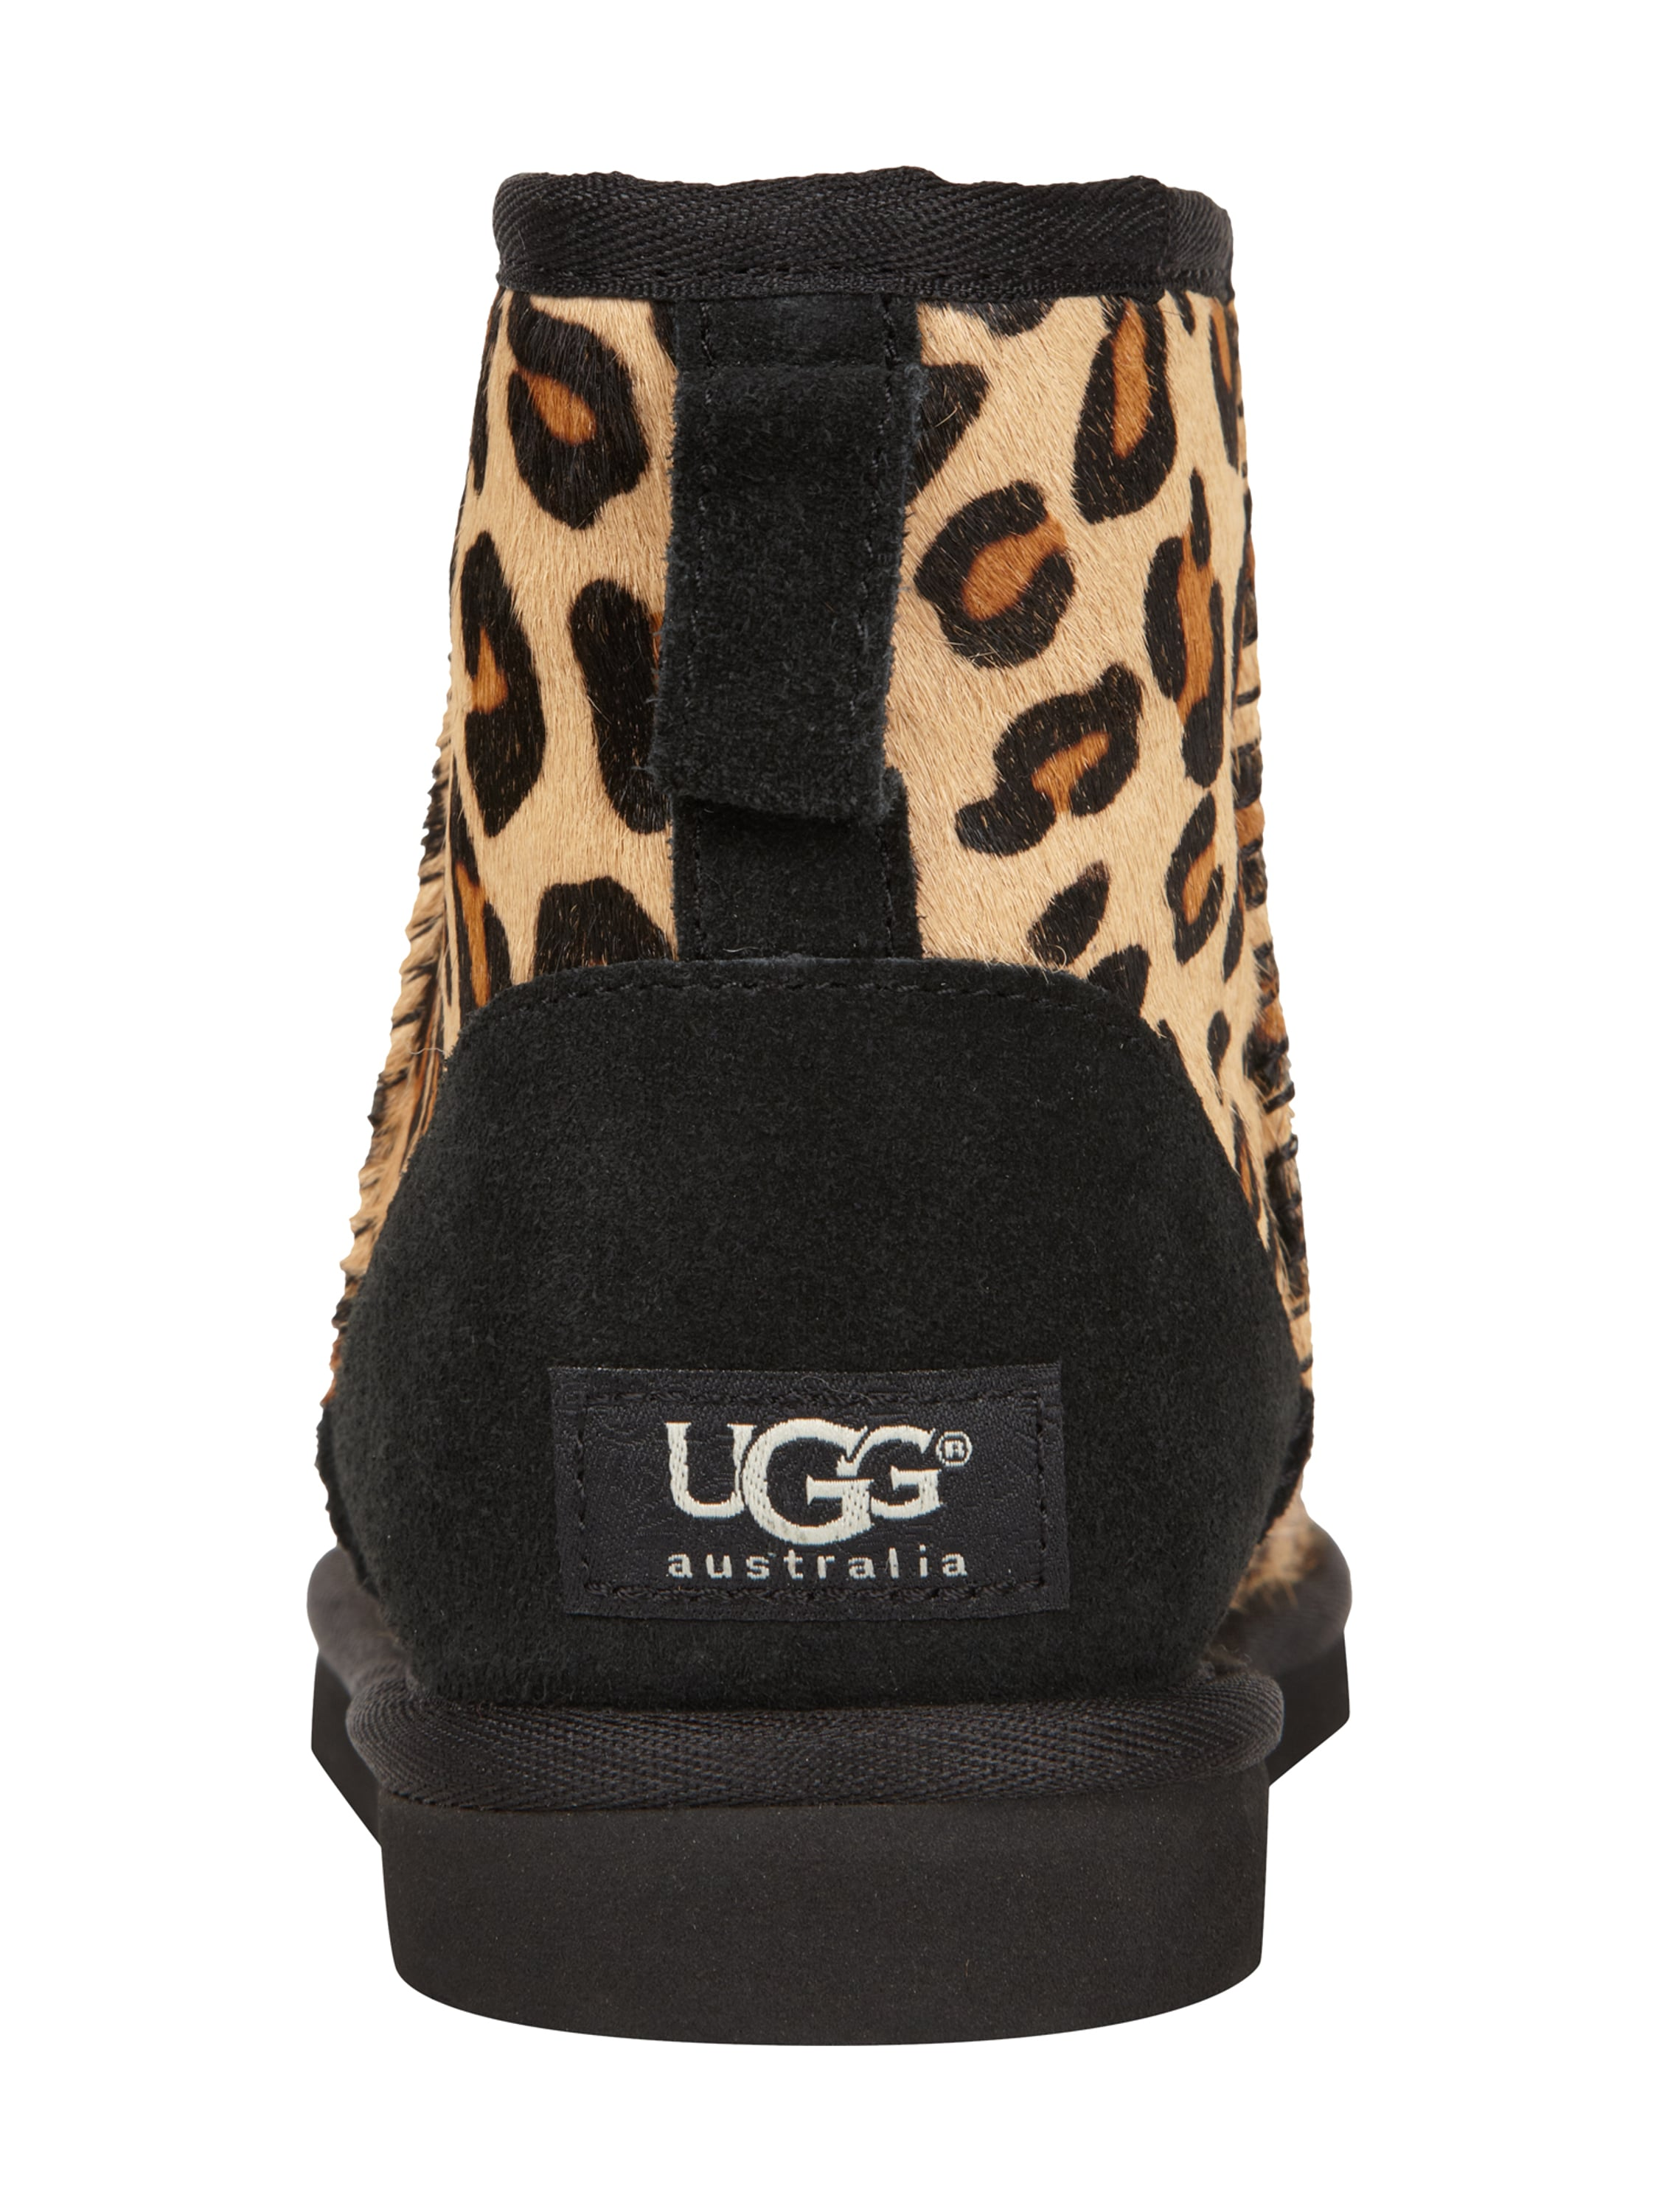 uggs leopardenmuster feelinginspired com au uggs leopardenmuster 2017. Black Bedroom Furniture Sets. Home Design Ideas